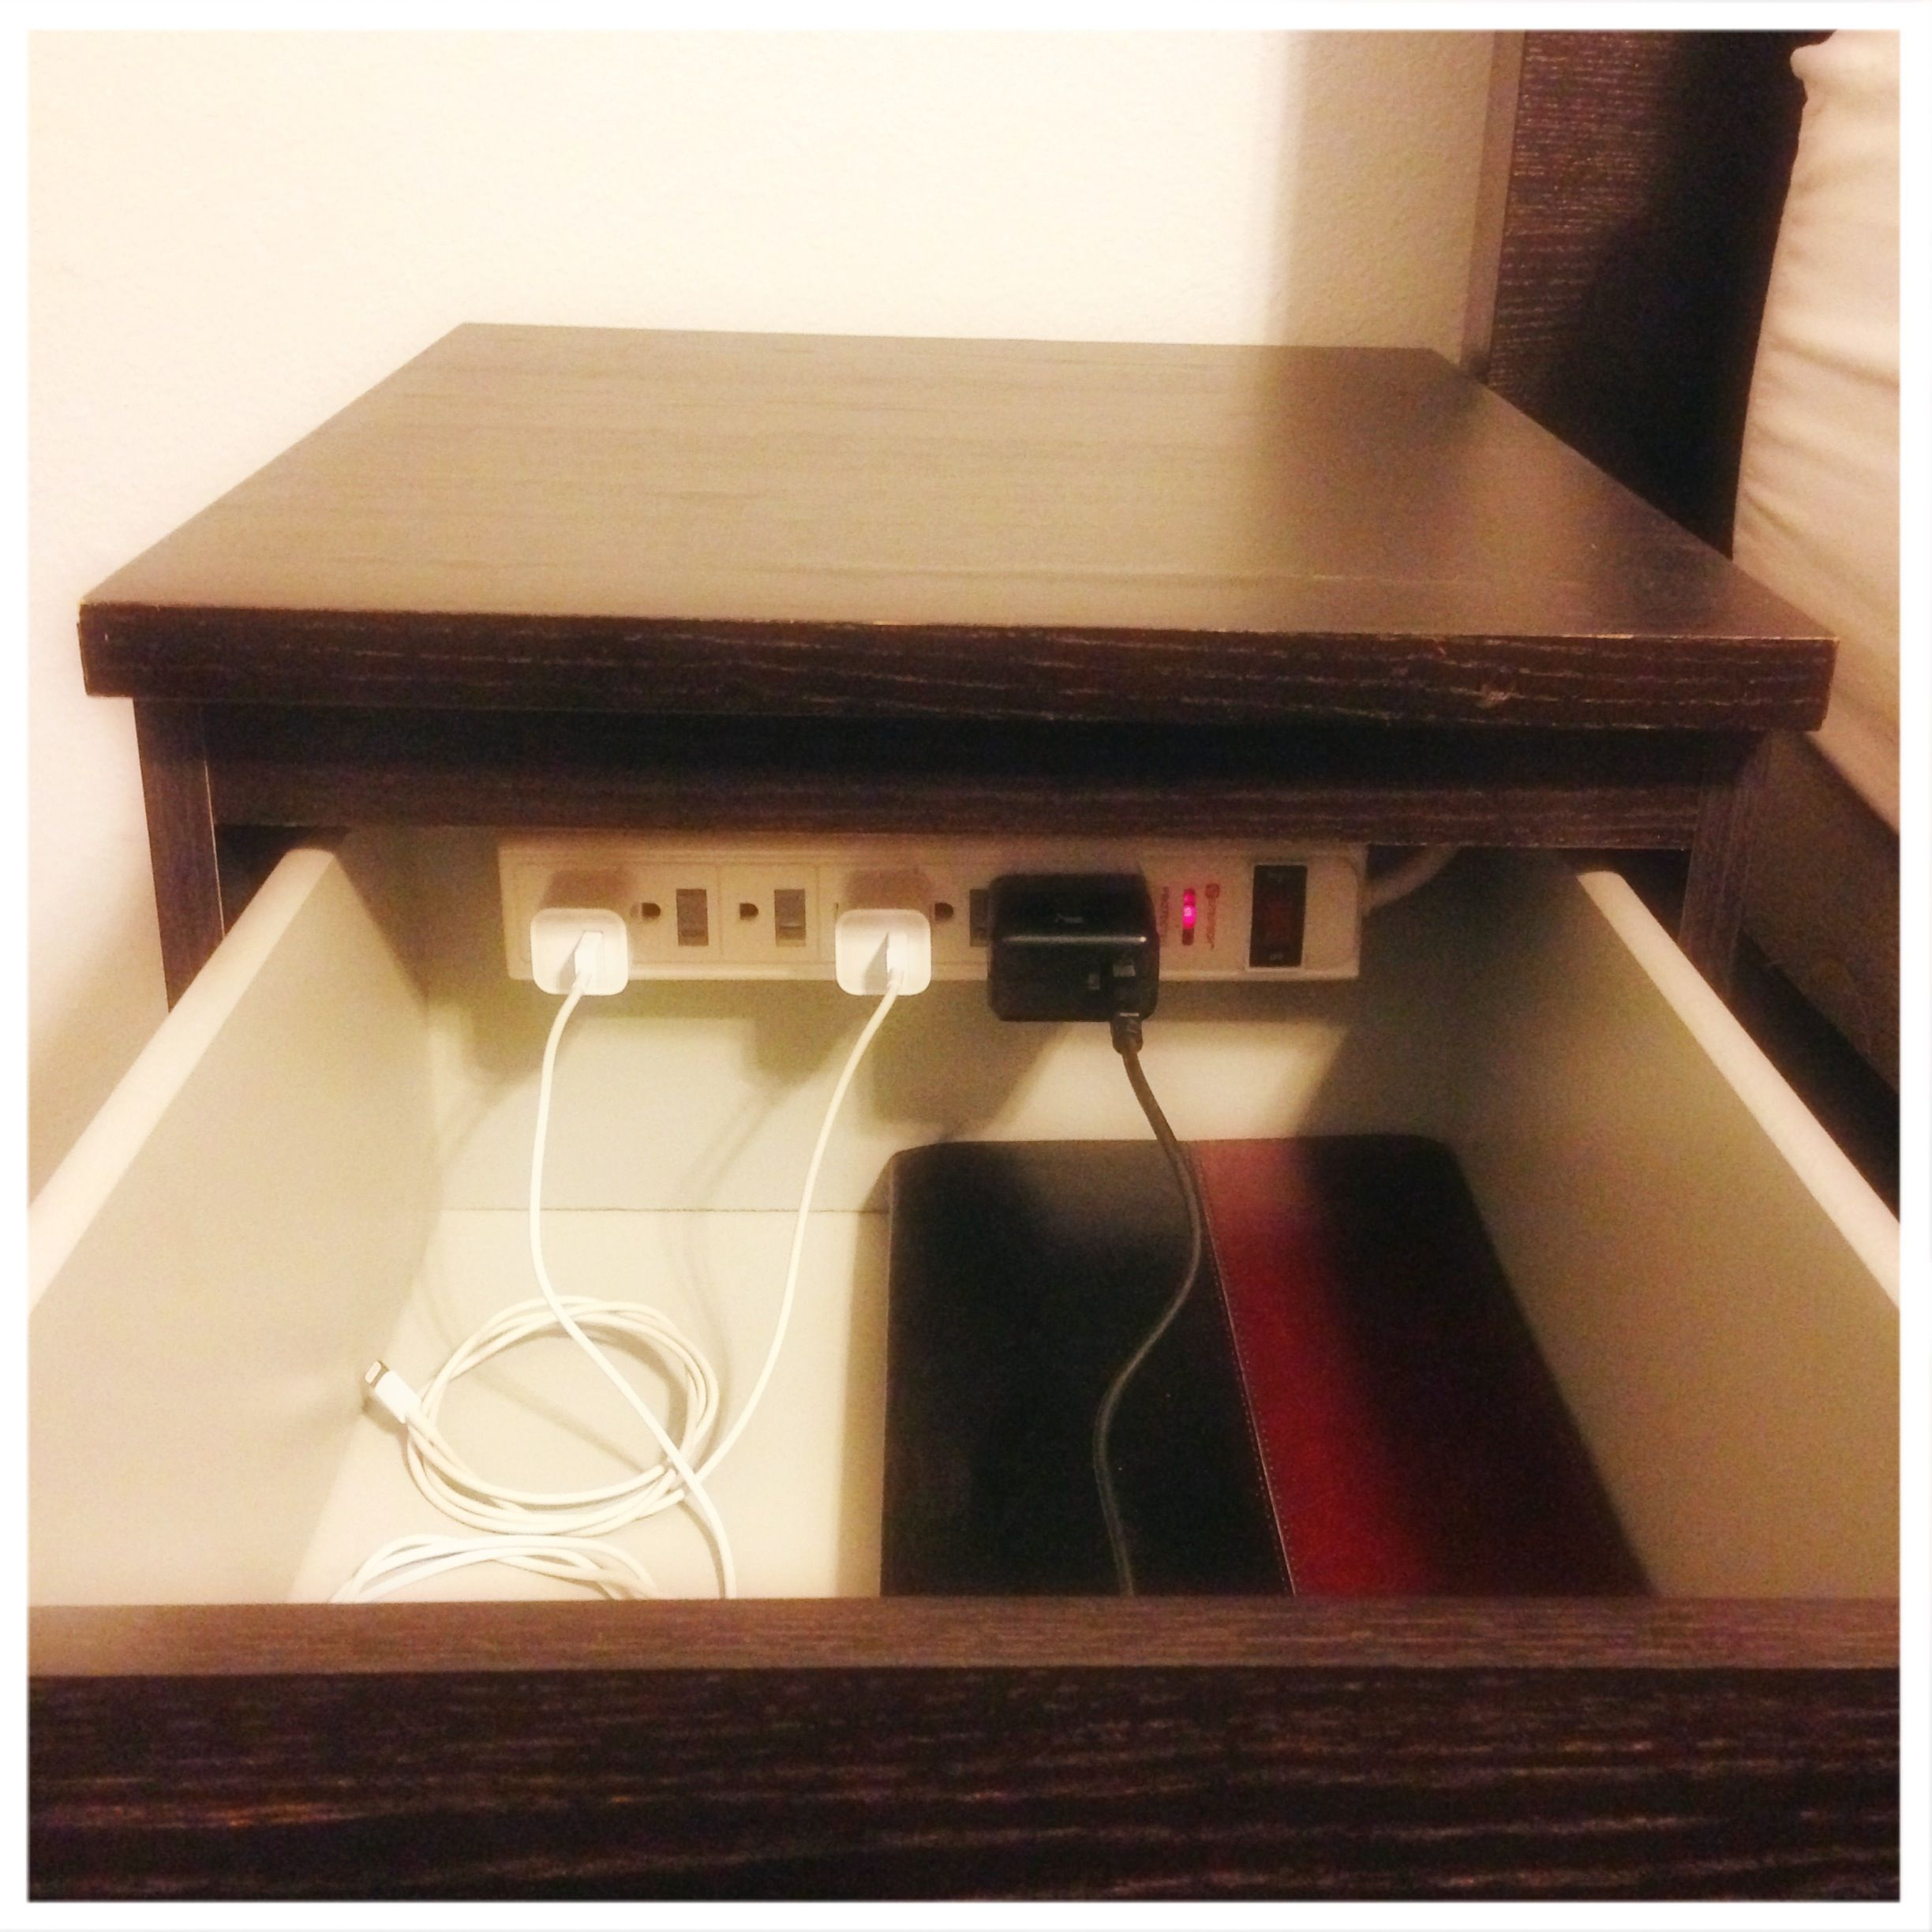 diy charging station in nightstand banish clutter organization